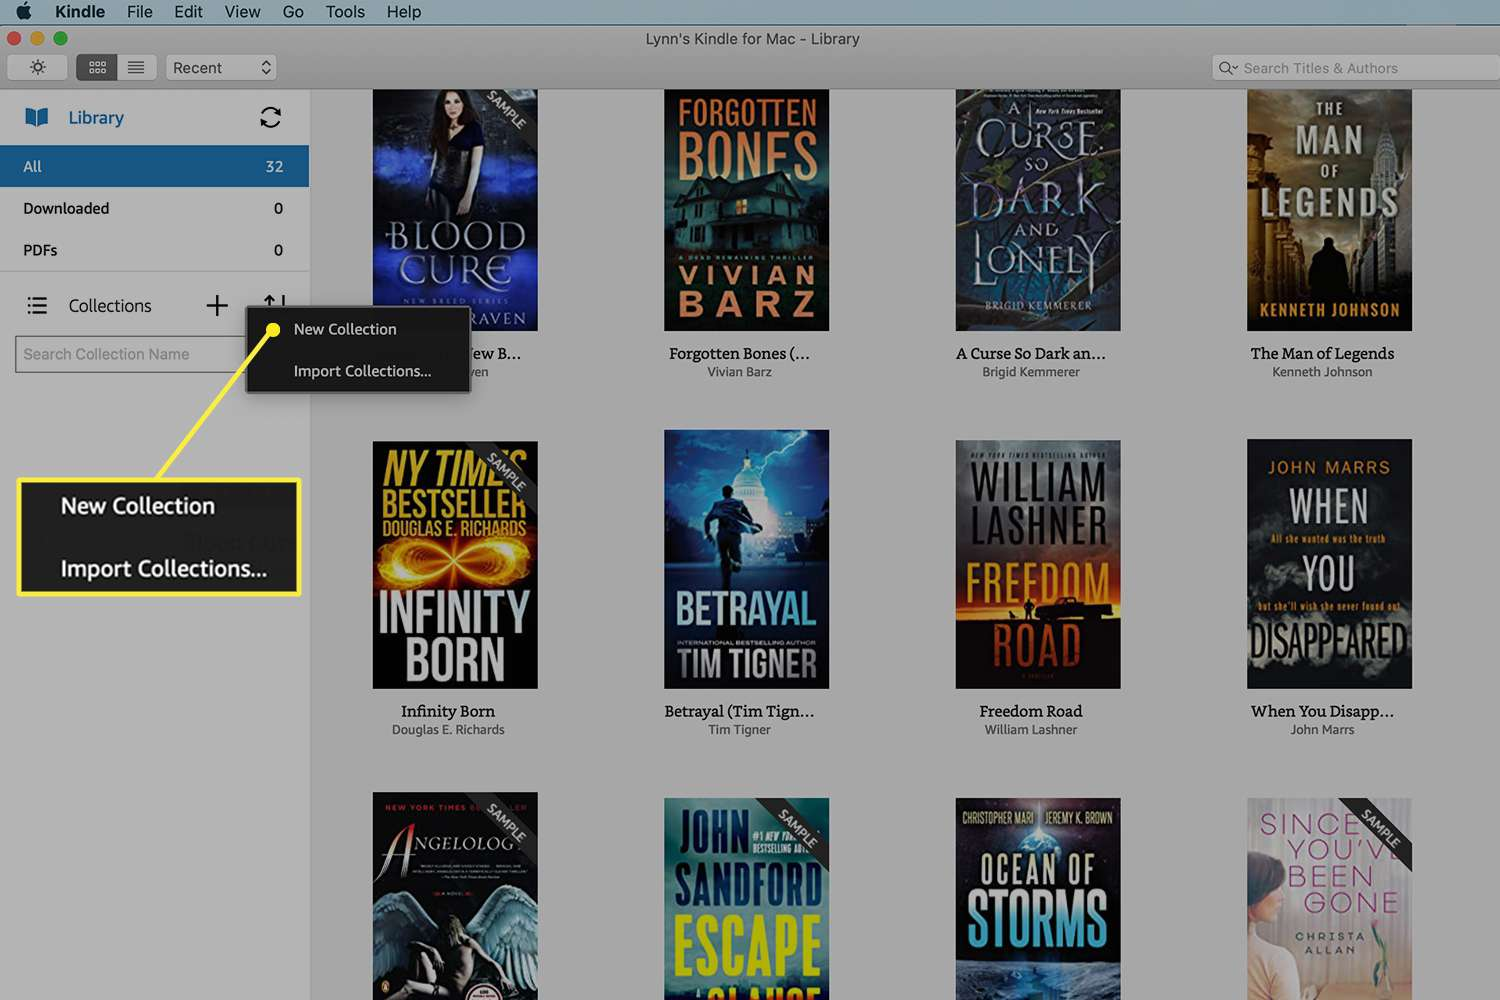 Kindle App for Mac with the New Collection button highlighted